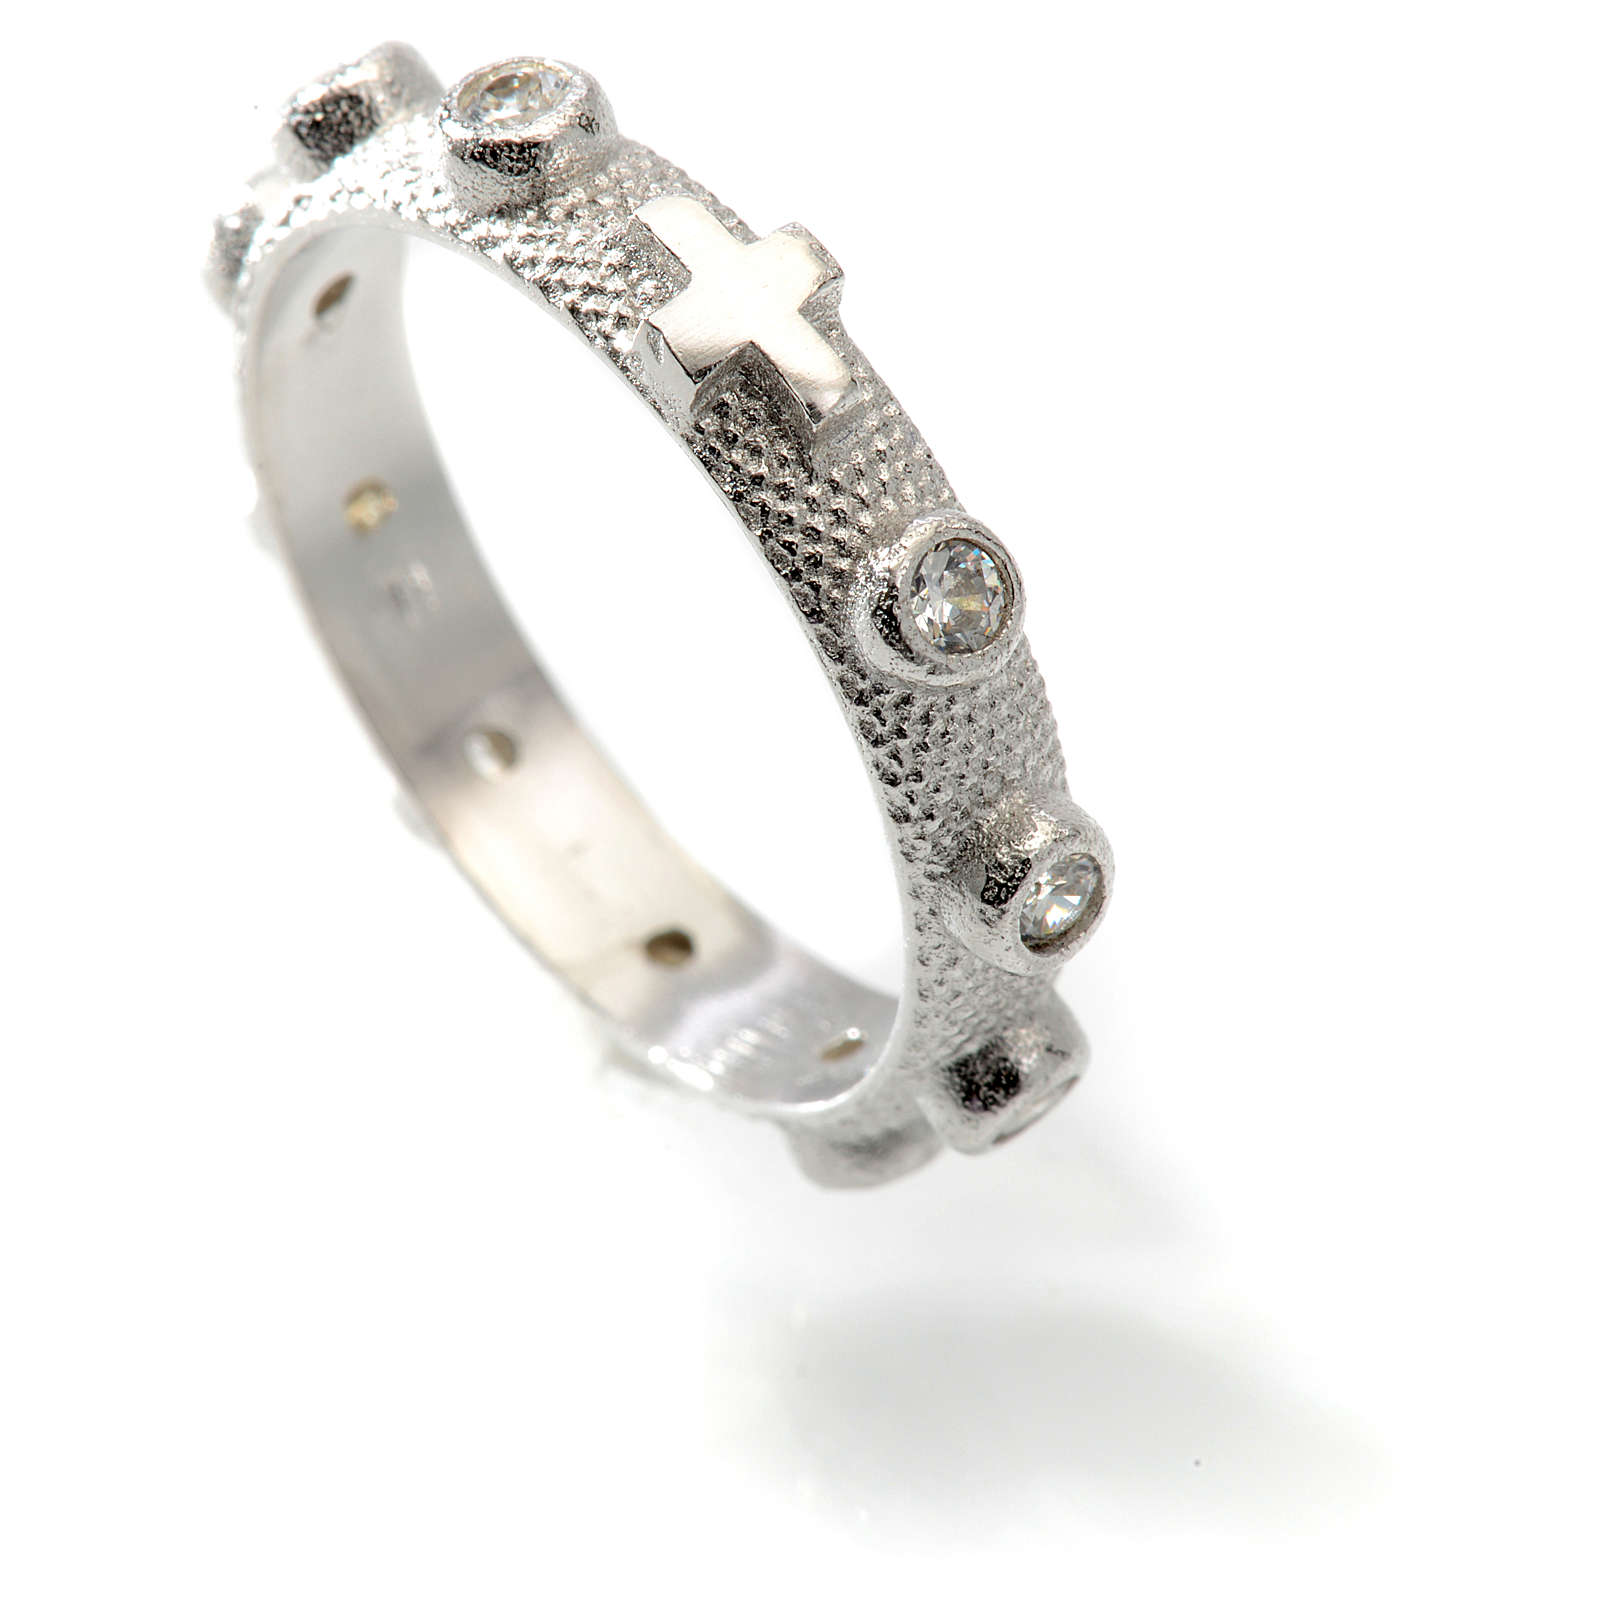 Prayer ring single decade in 925 silver and white zircon 3